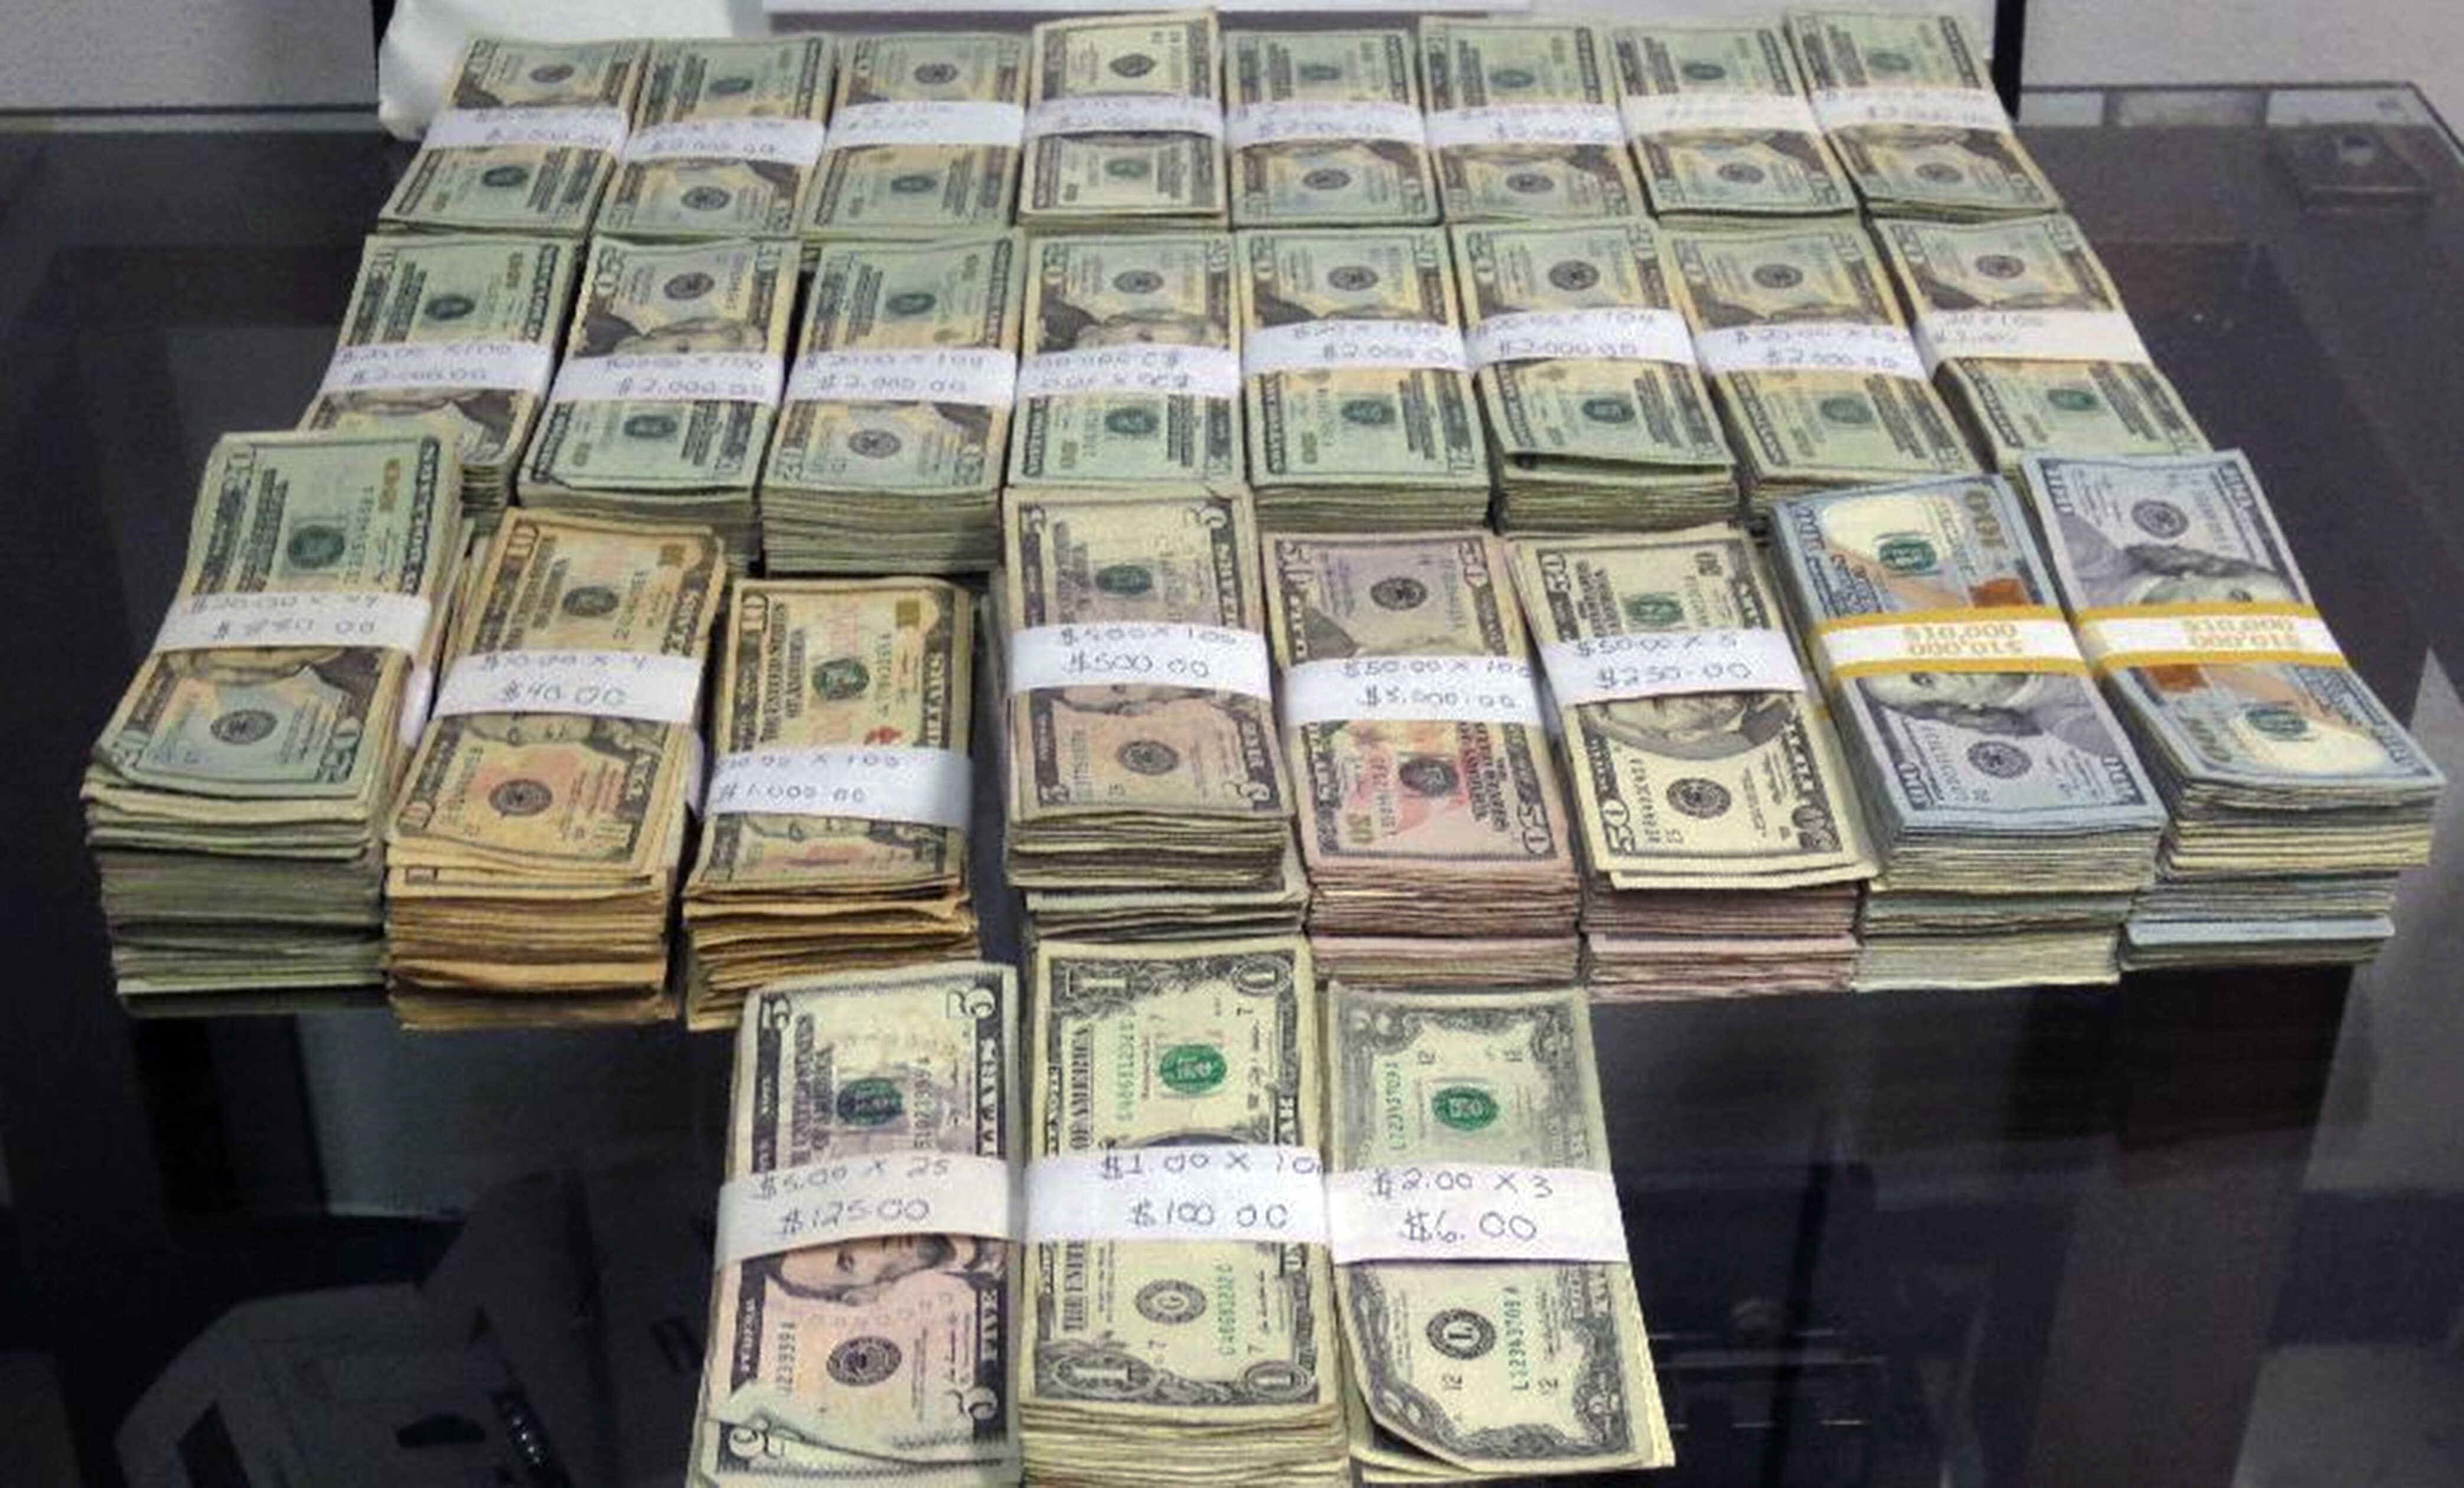 Us Customs Seizure Letter.Customs Agency Cash Seizures At Airports Cost Travelers